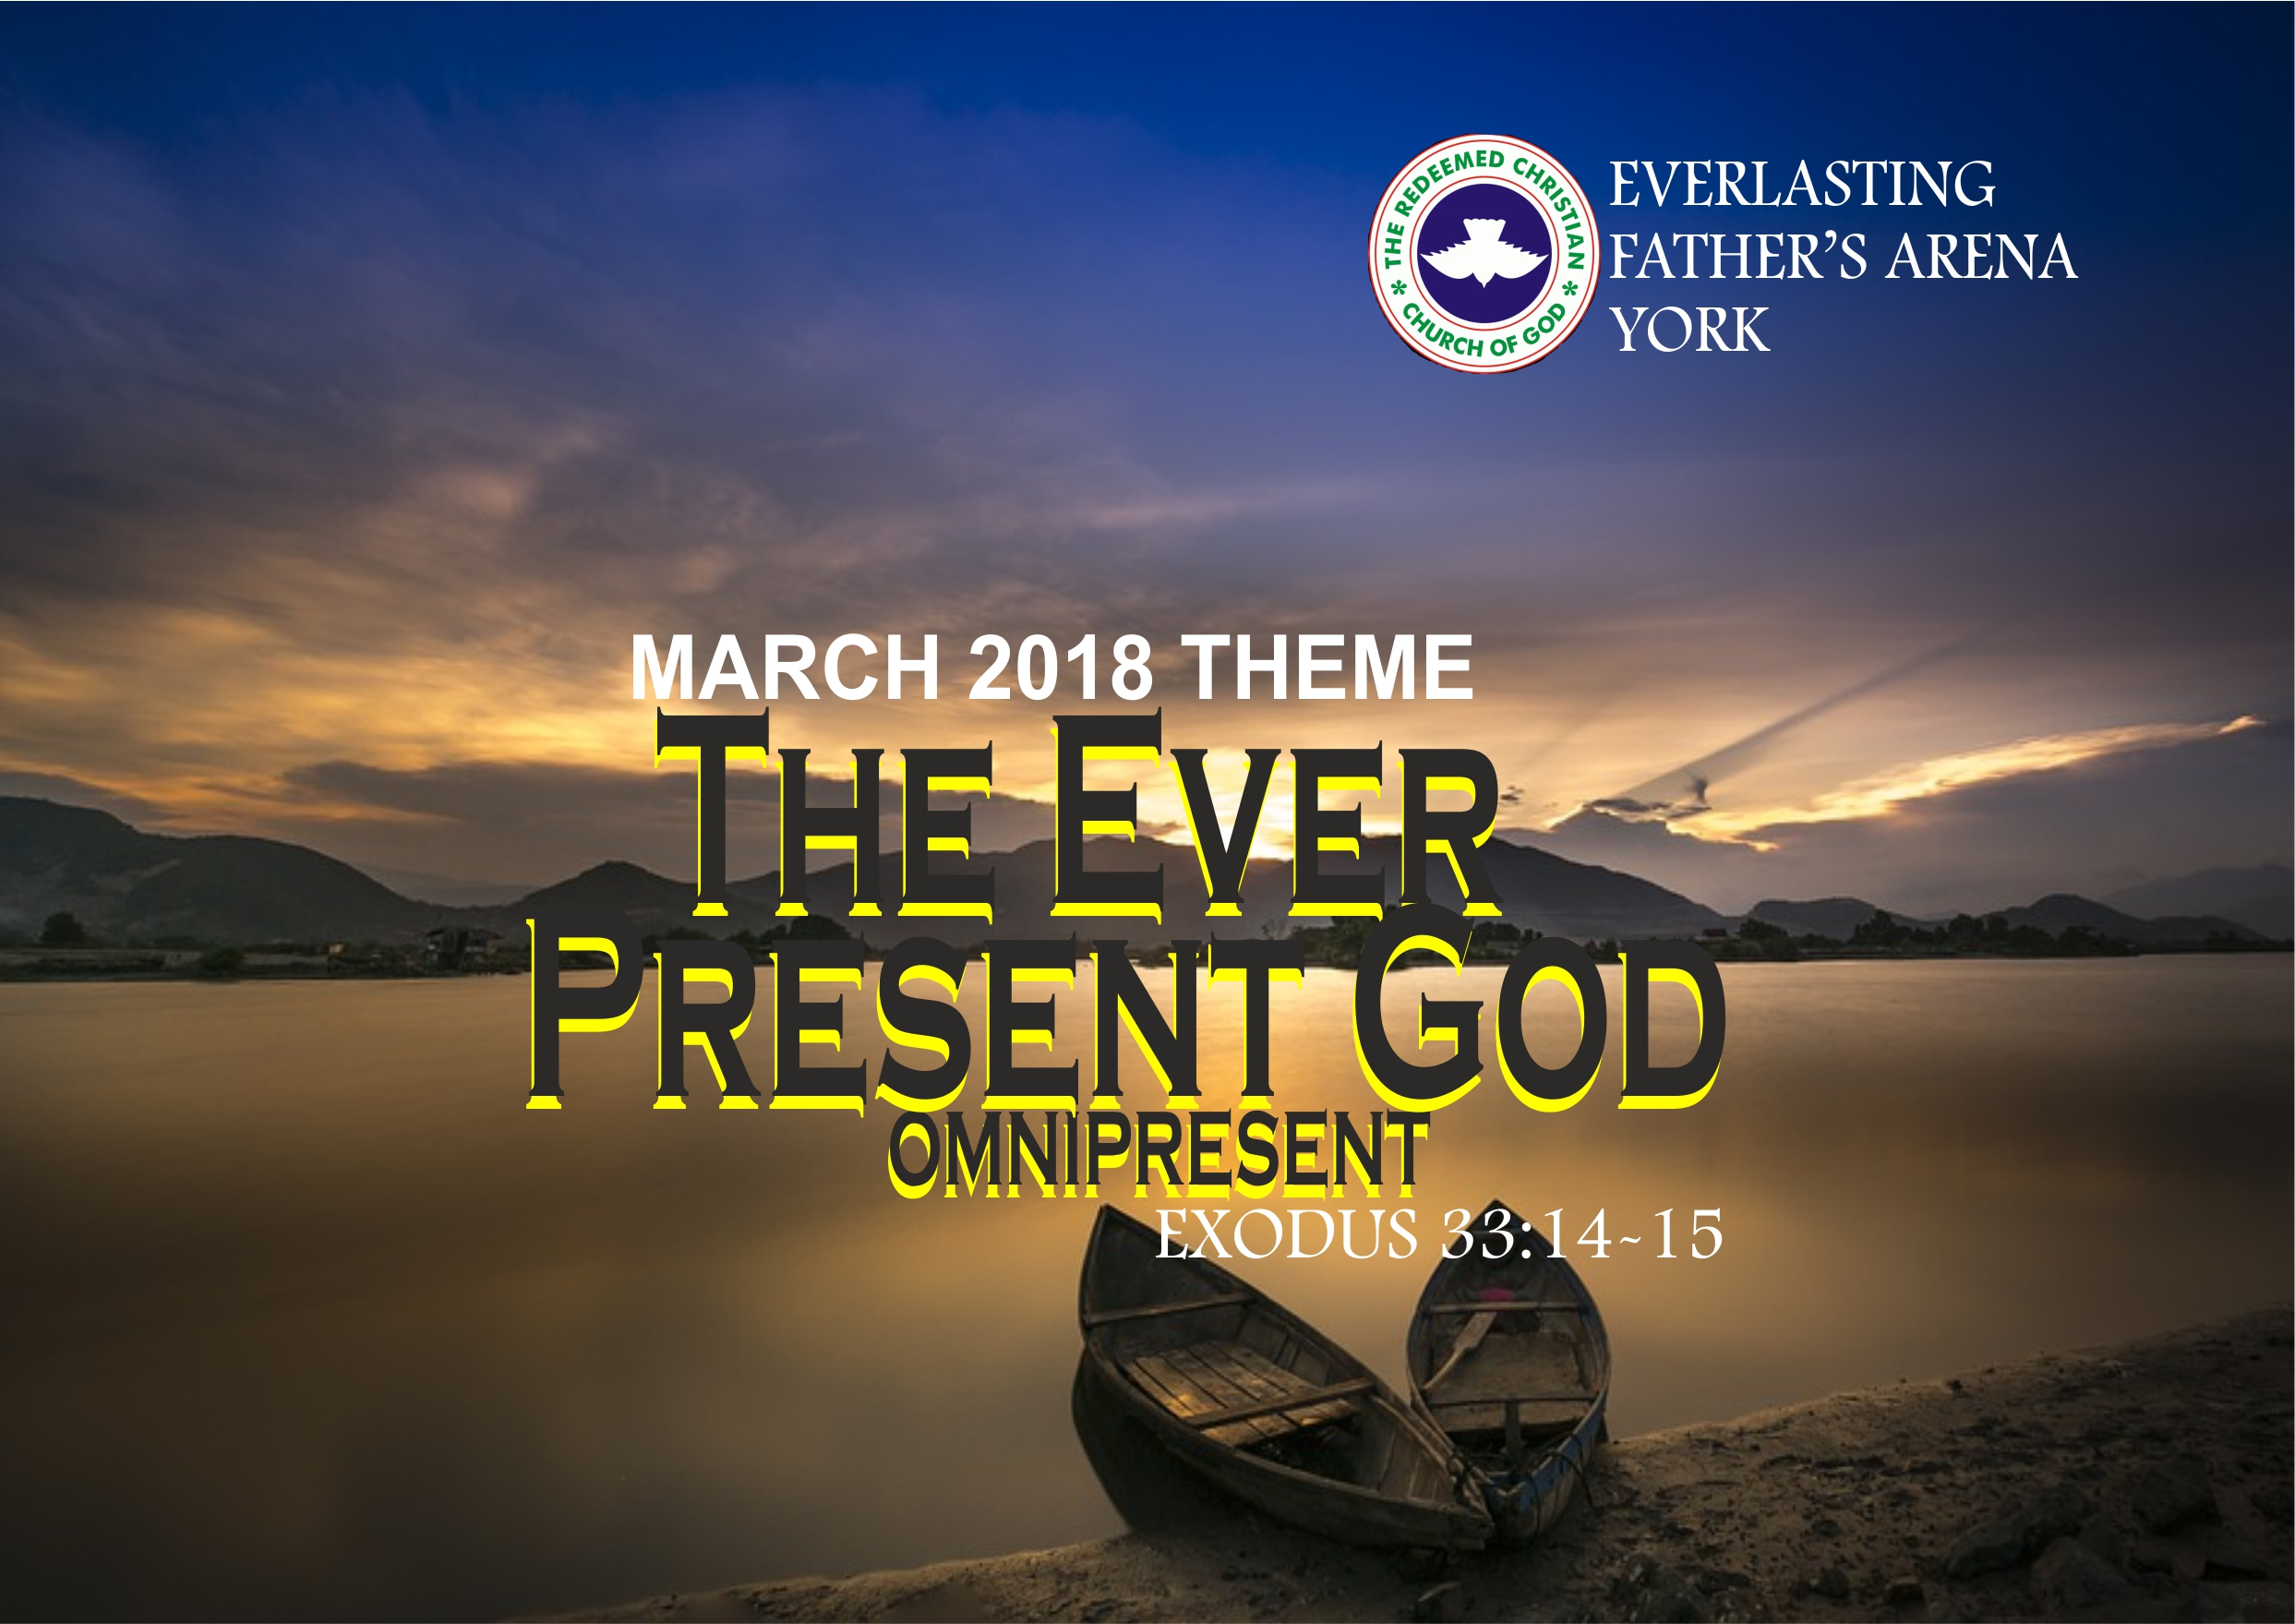 March 2018 Theme – The Ever Present God (Omnipresent) Exodus 33:14-15.